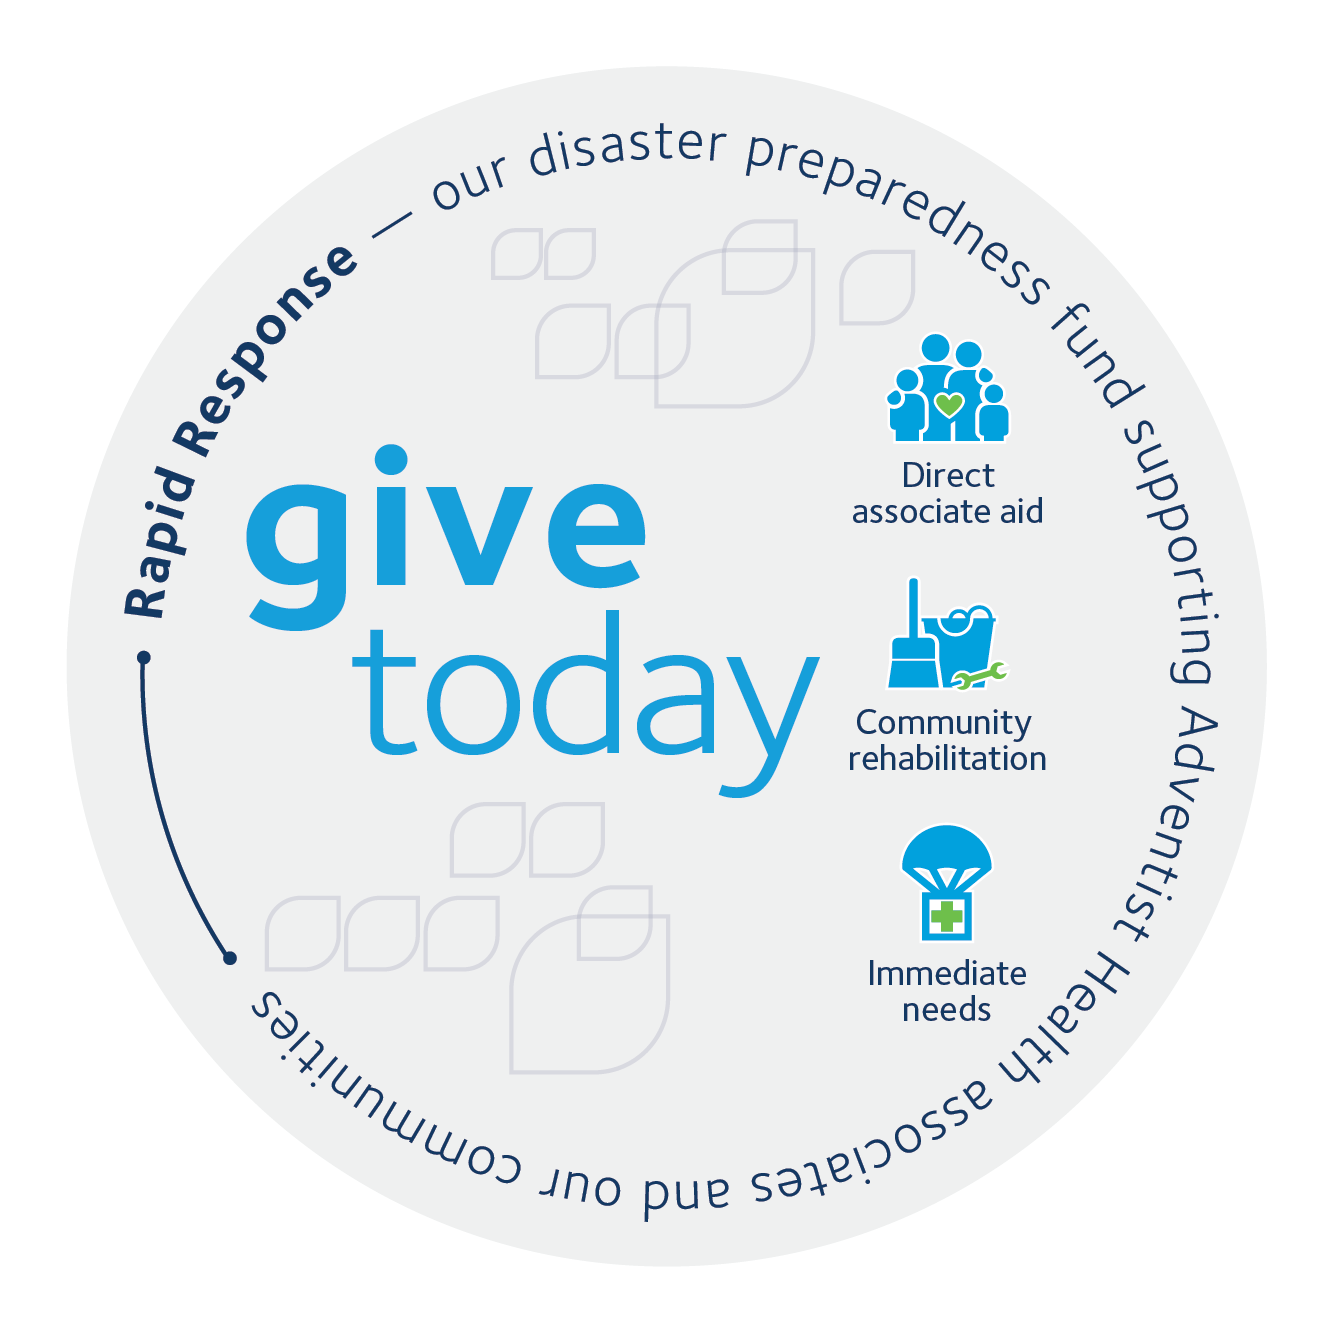 Give today to support direct associate aid, community rehabilitation and immediate needs following disaster